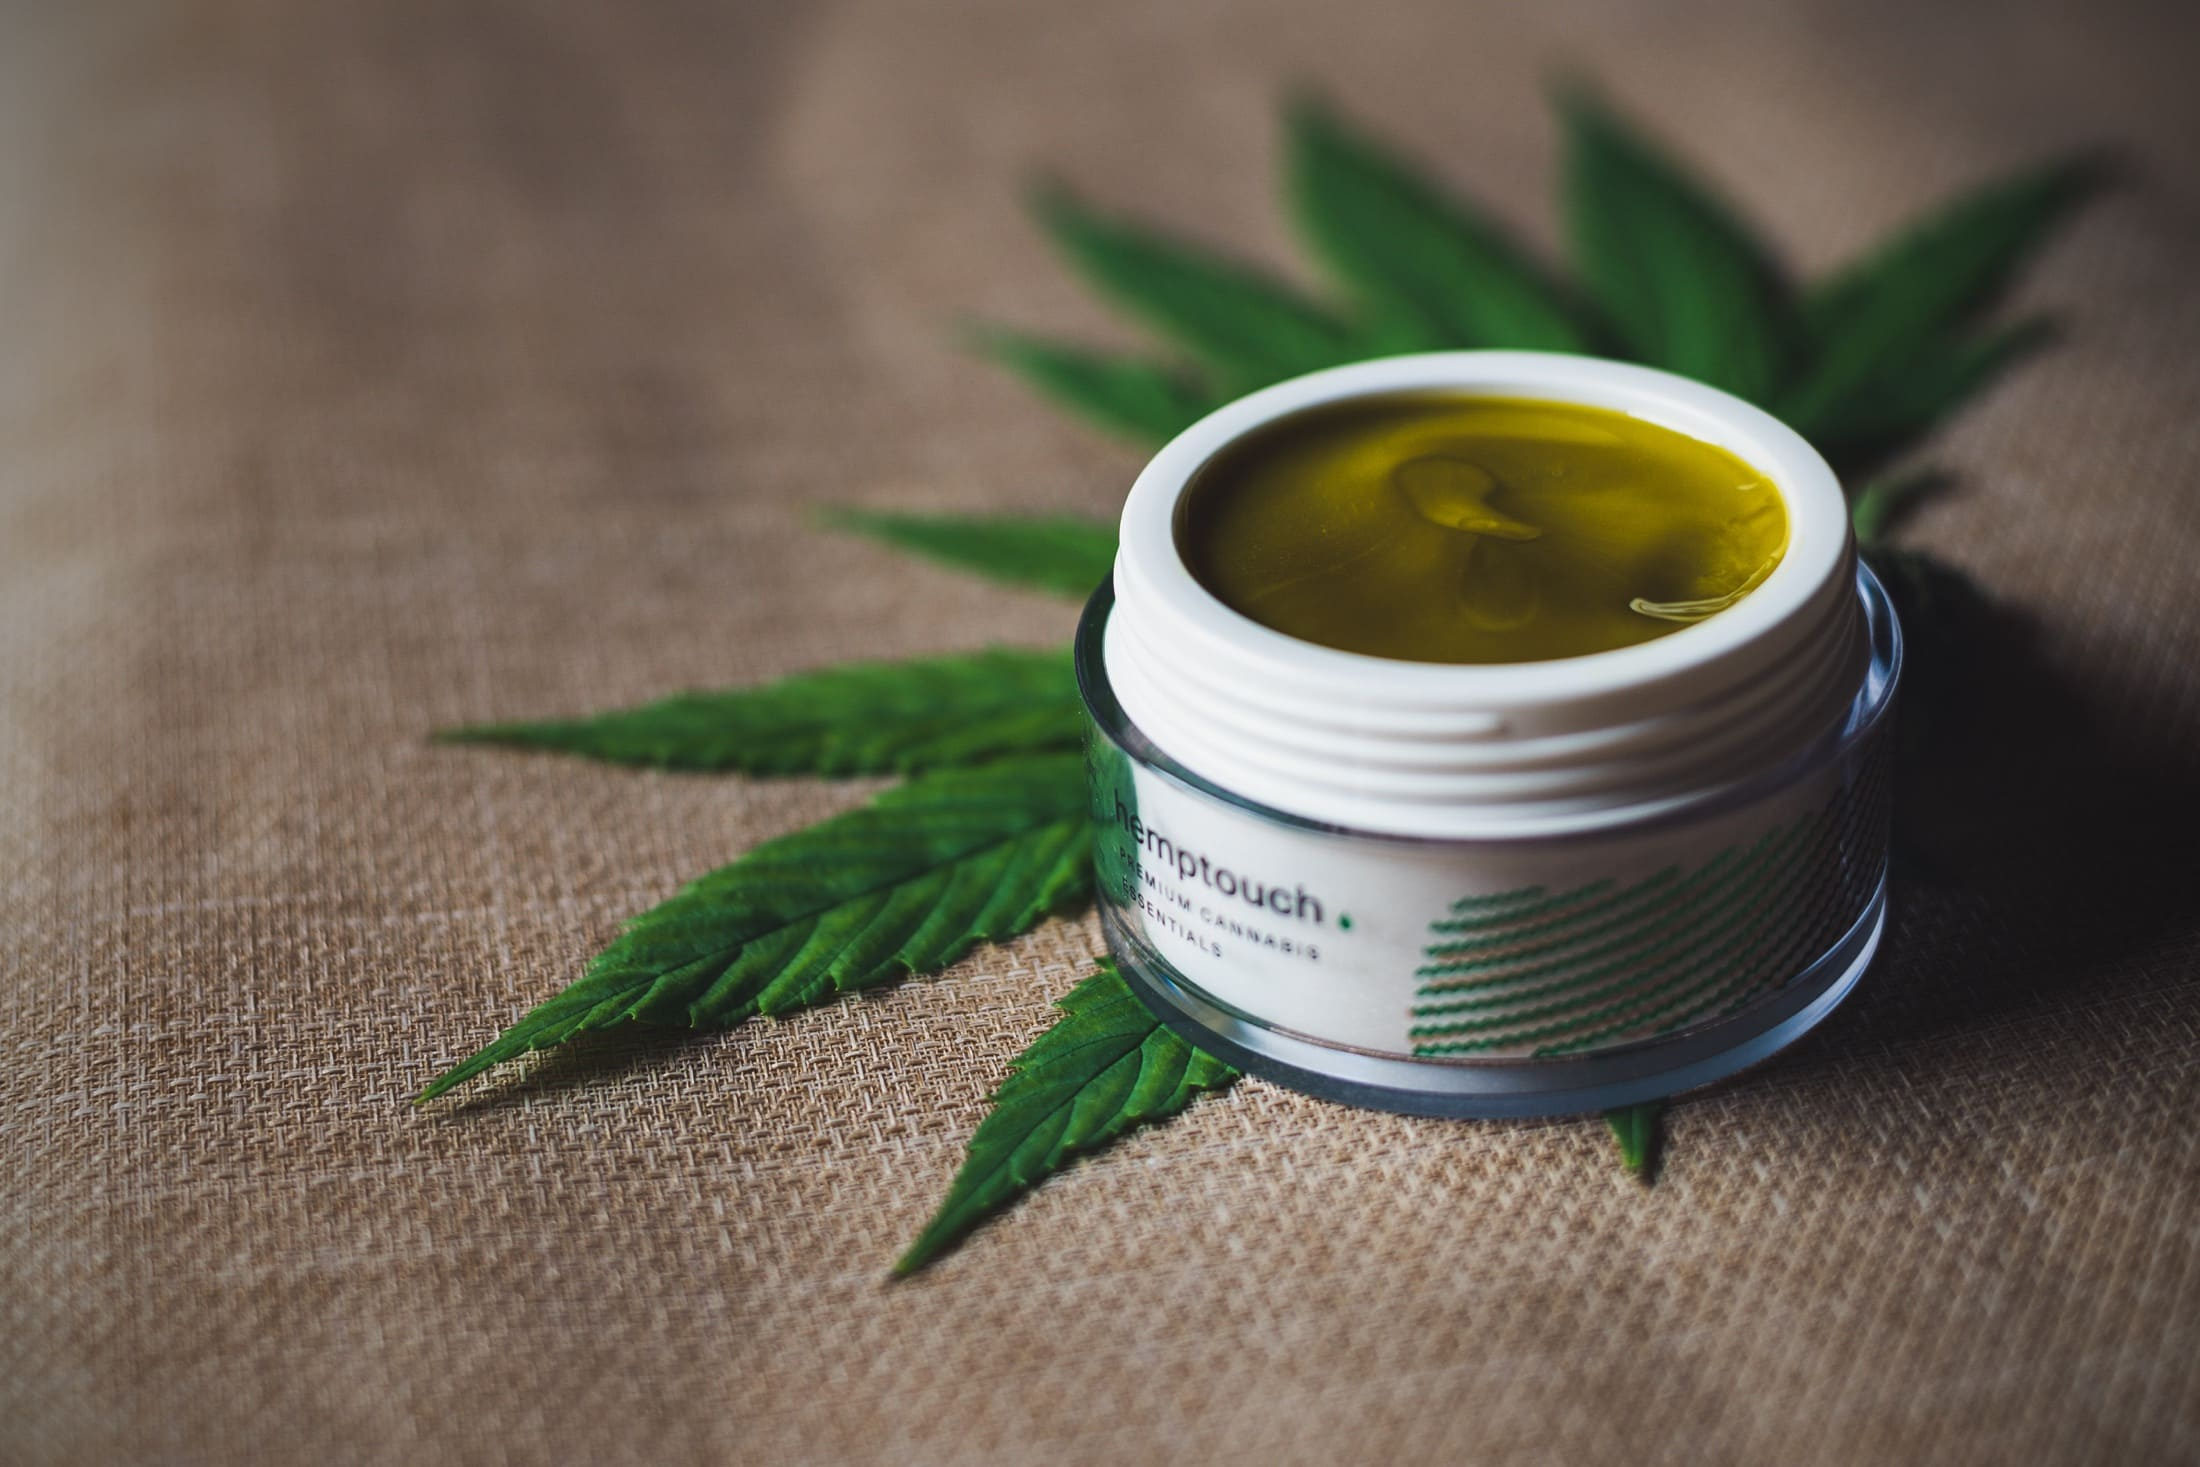 Naming a Cannabis Company? Here's What to Consider